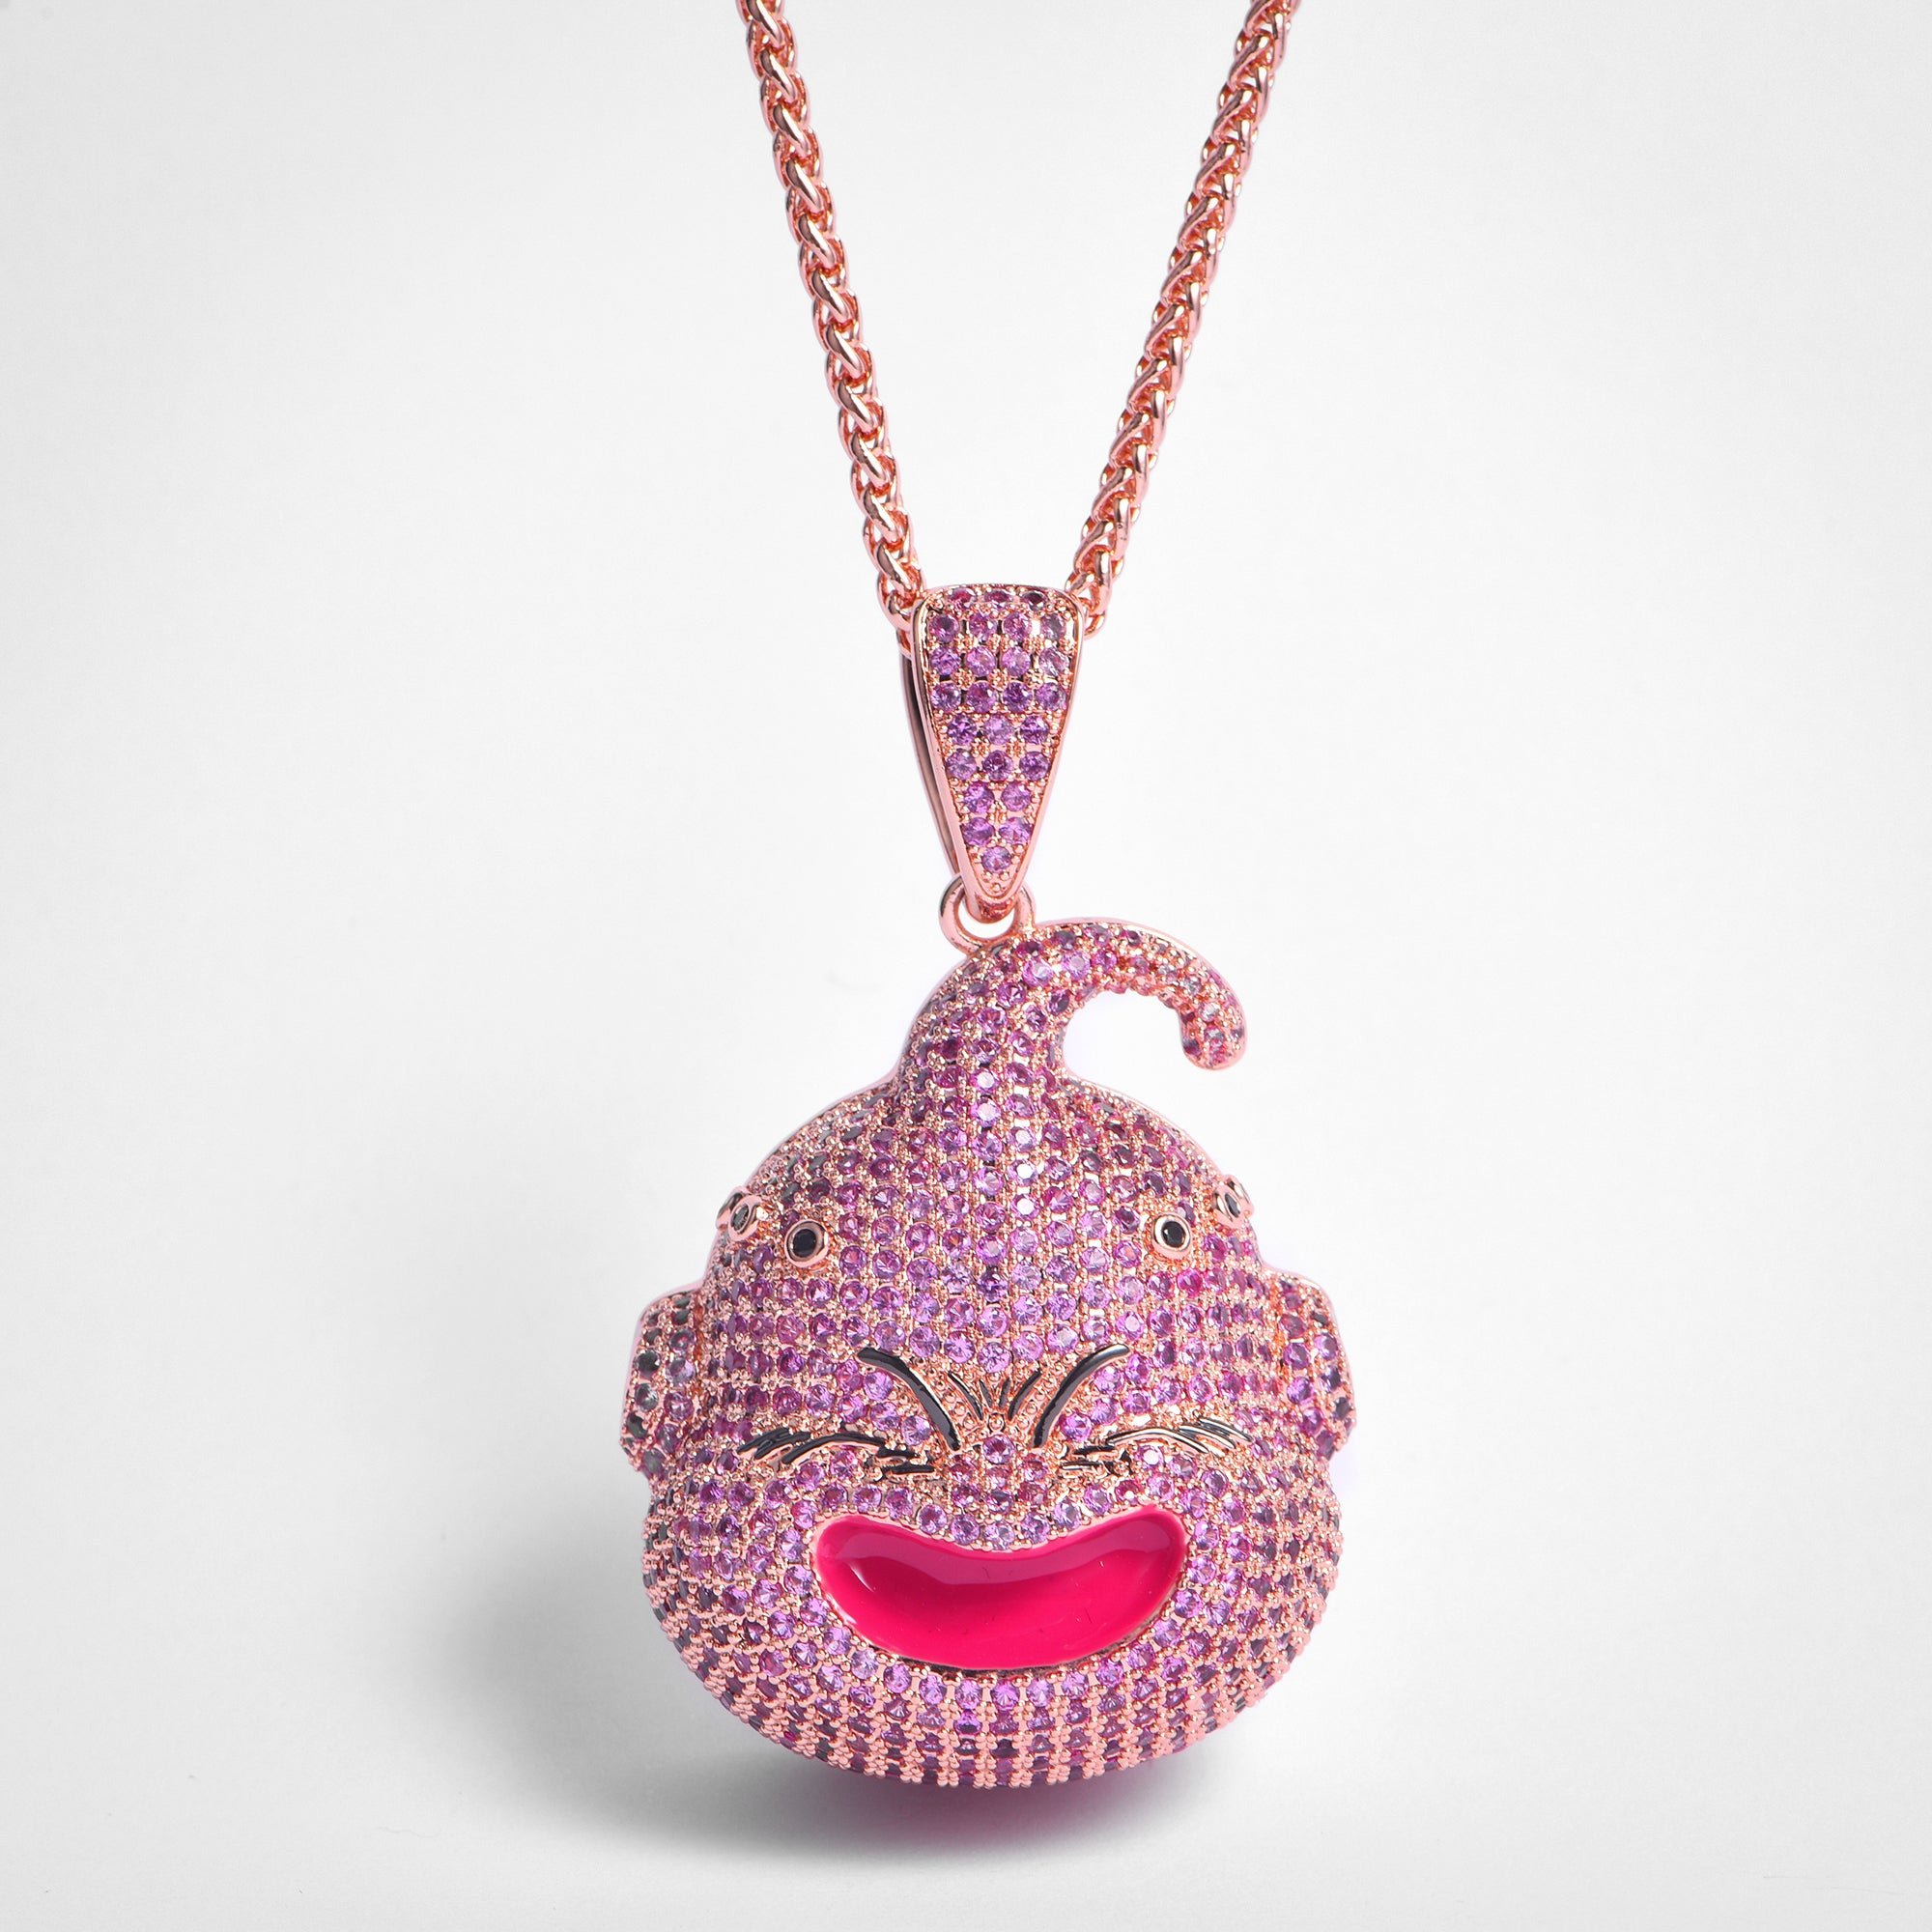 18K Gold Fat Buu Necklace